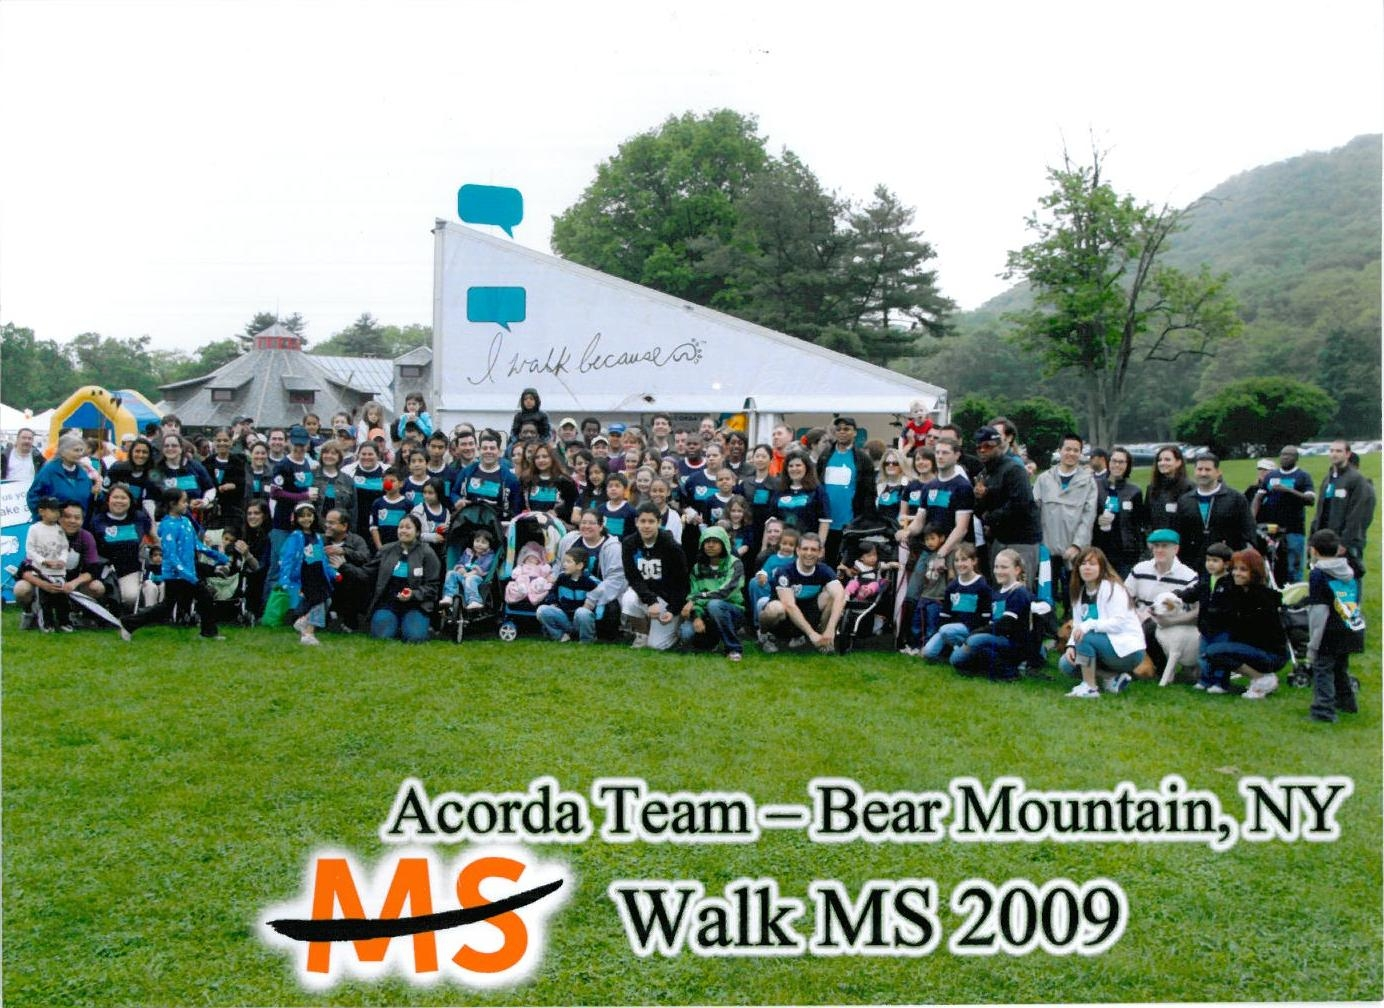 2009 Walk MS Acorda Team Bear Mountain